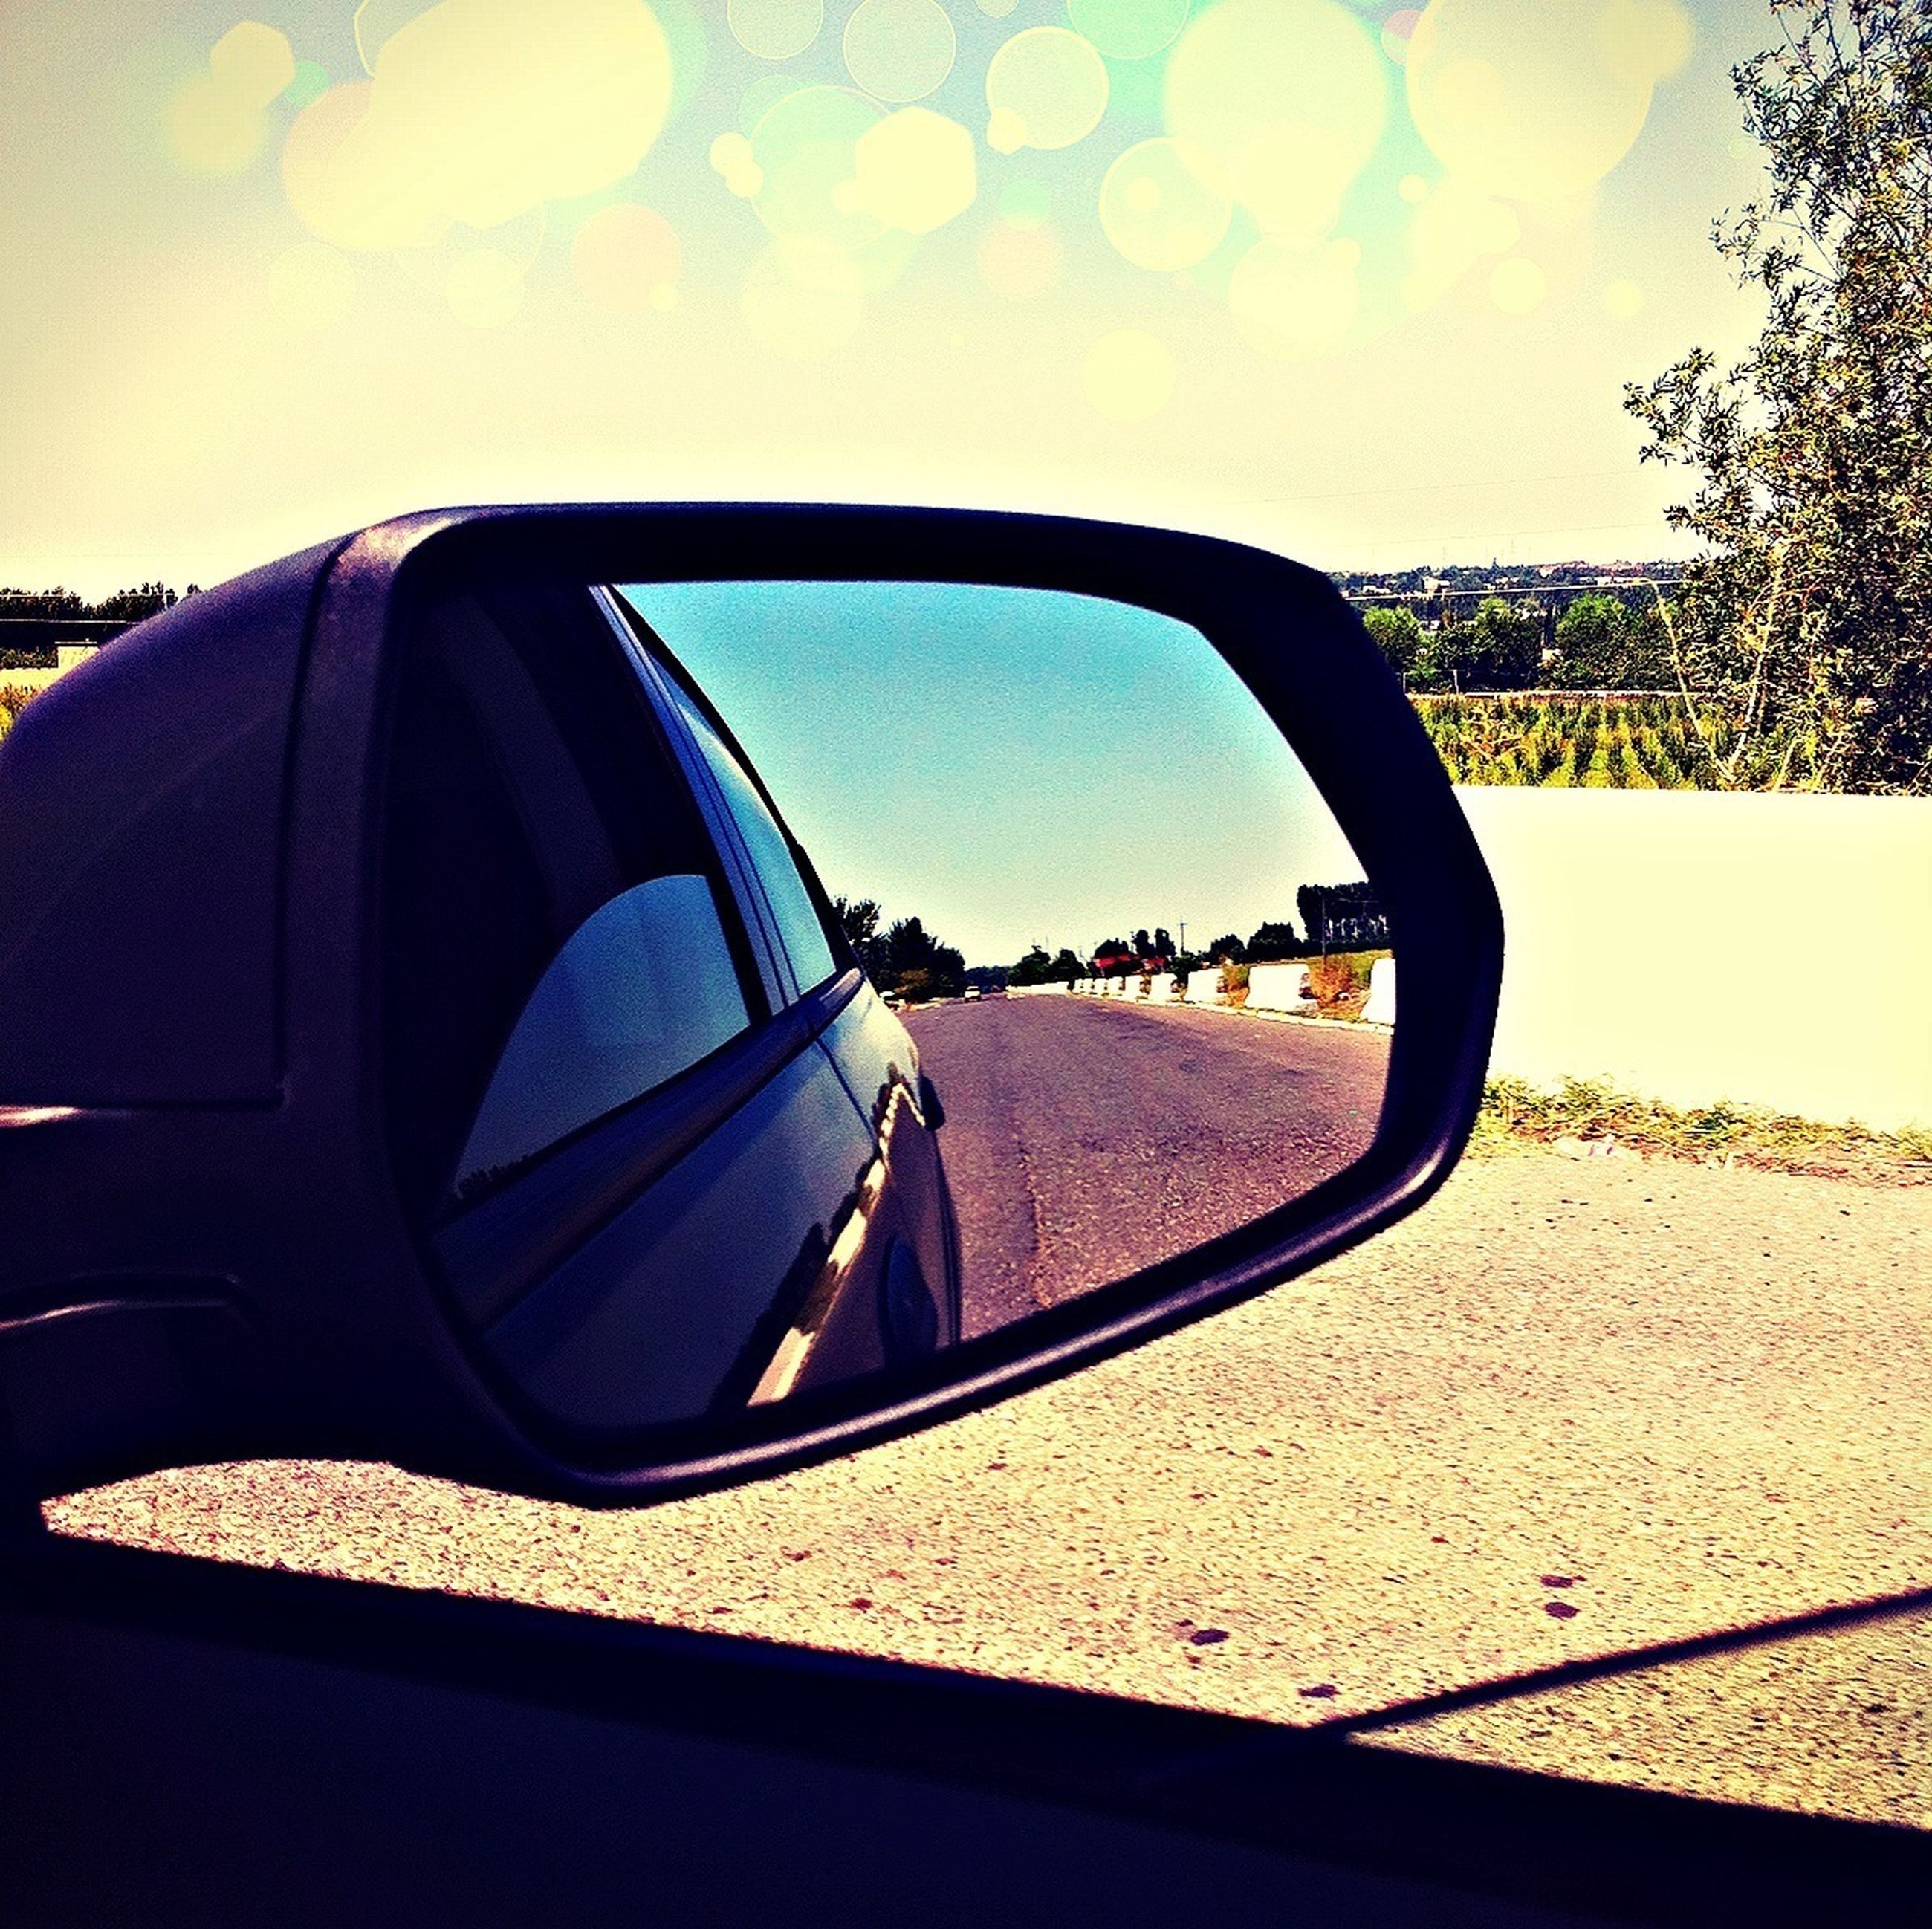 transportation, mode of transport, land vehicle, car, side-view mirror, sky, close-up, part of, vehicle interior, clear sky, reflection, sunlight, landscape, cropped, road, day, travel, car interior, sunglasses, bare tree